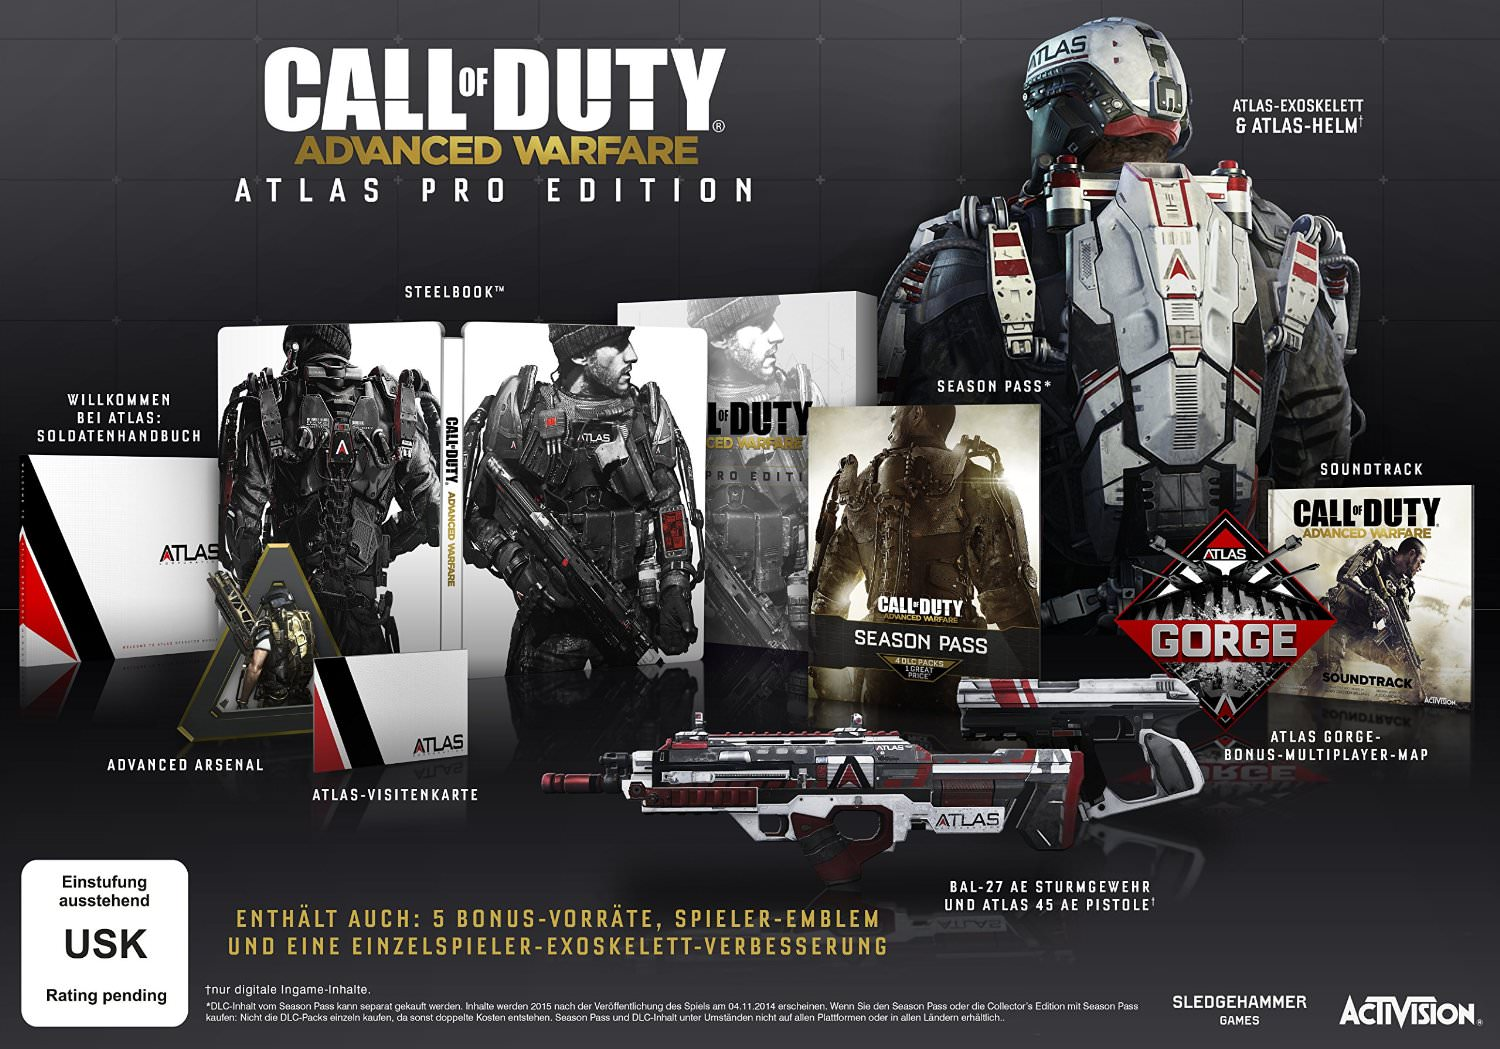 call-of-duty-advanced-warfare-atlas-pro-und-limited-edition-ps4-xboxone